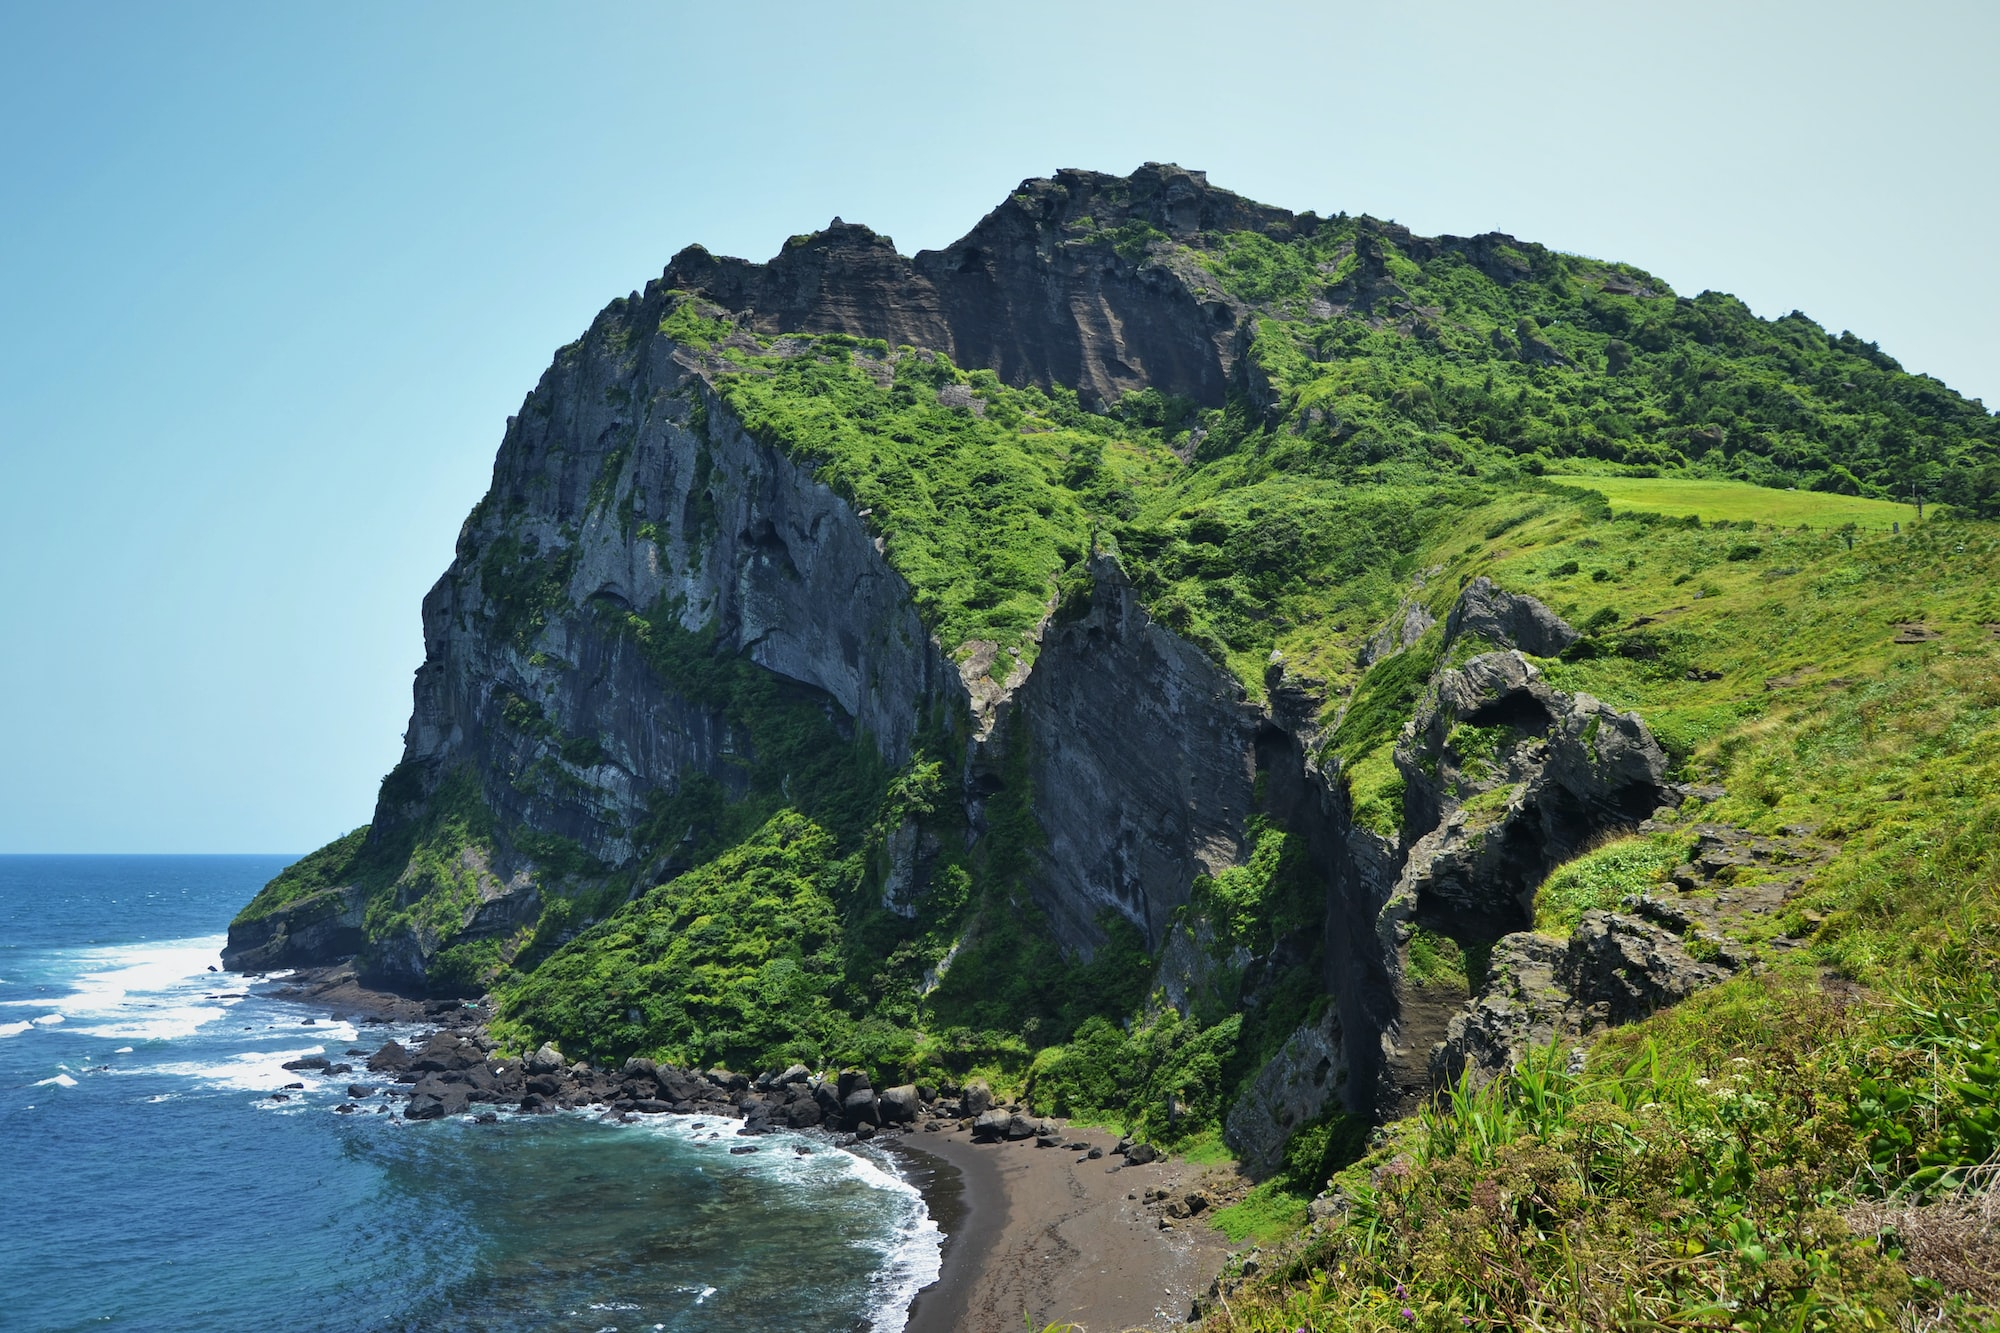 This picture showcases Seongsan Ilchulbong in Jeju Island, South Korea. The picture shows a still volcano from the inland, with a volcanic black beach and lush greenery; a place stripped of all human life. A gigantic cliff crashes into the sea and creates a gorgeous interplay between sky, land, and seaside. The waves crash onto the side of the cliff and the sky is completely clear, with no obstructions and no clouds. A beautiful, sunny day in Jeju Island, the biggest volcanic island of South Korea. The countryside and the scenery inspire adventure in this amazing natural park full of beauty.